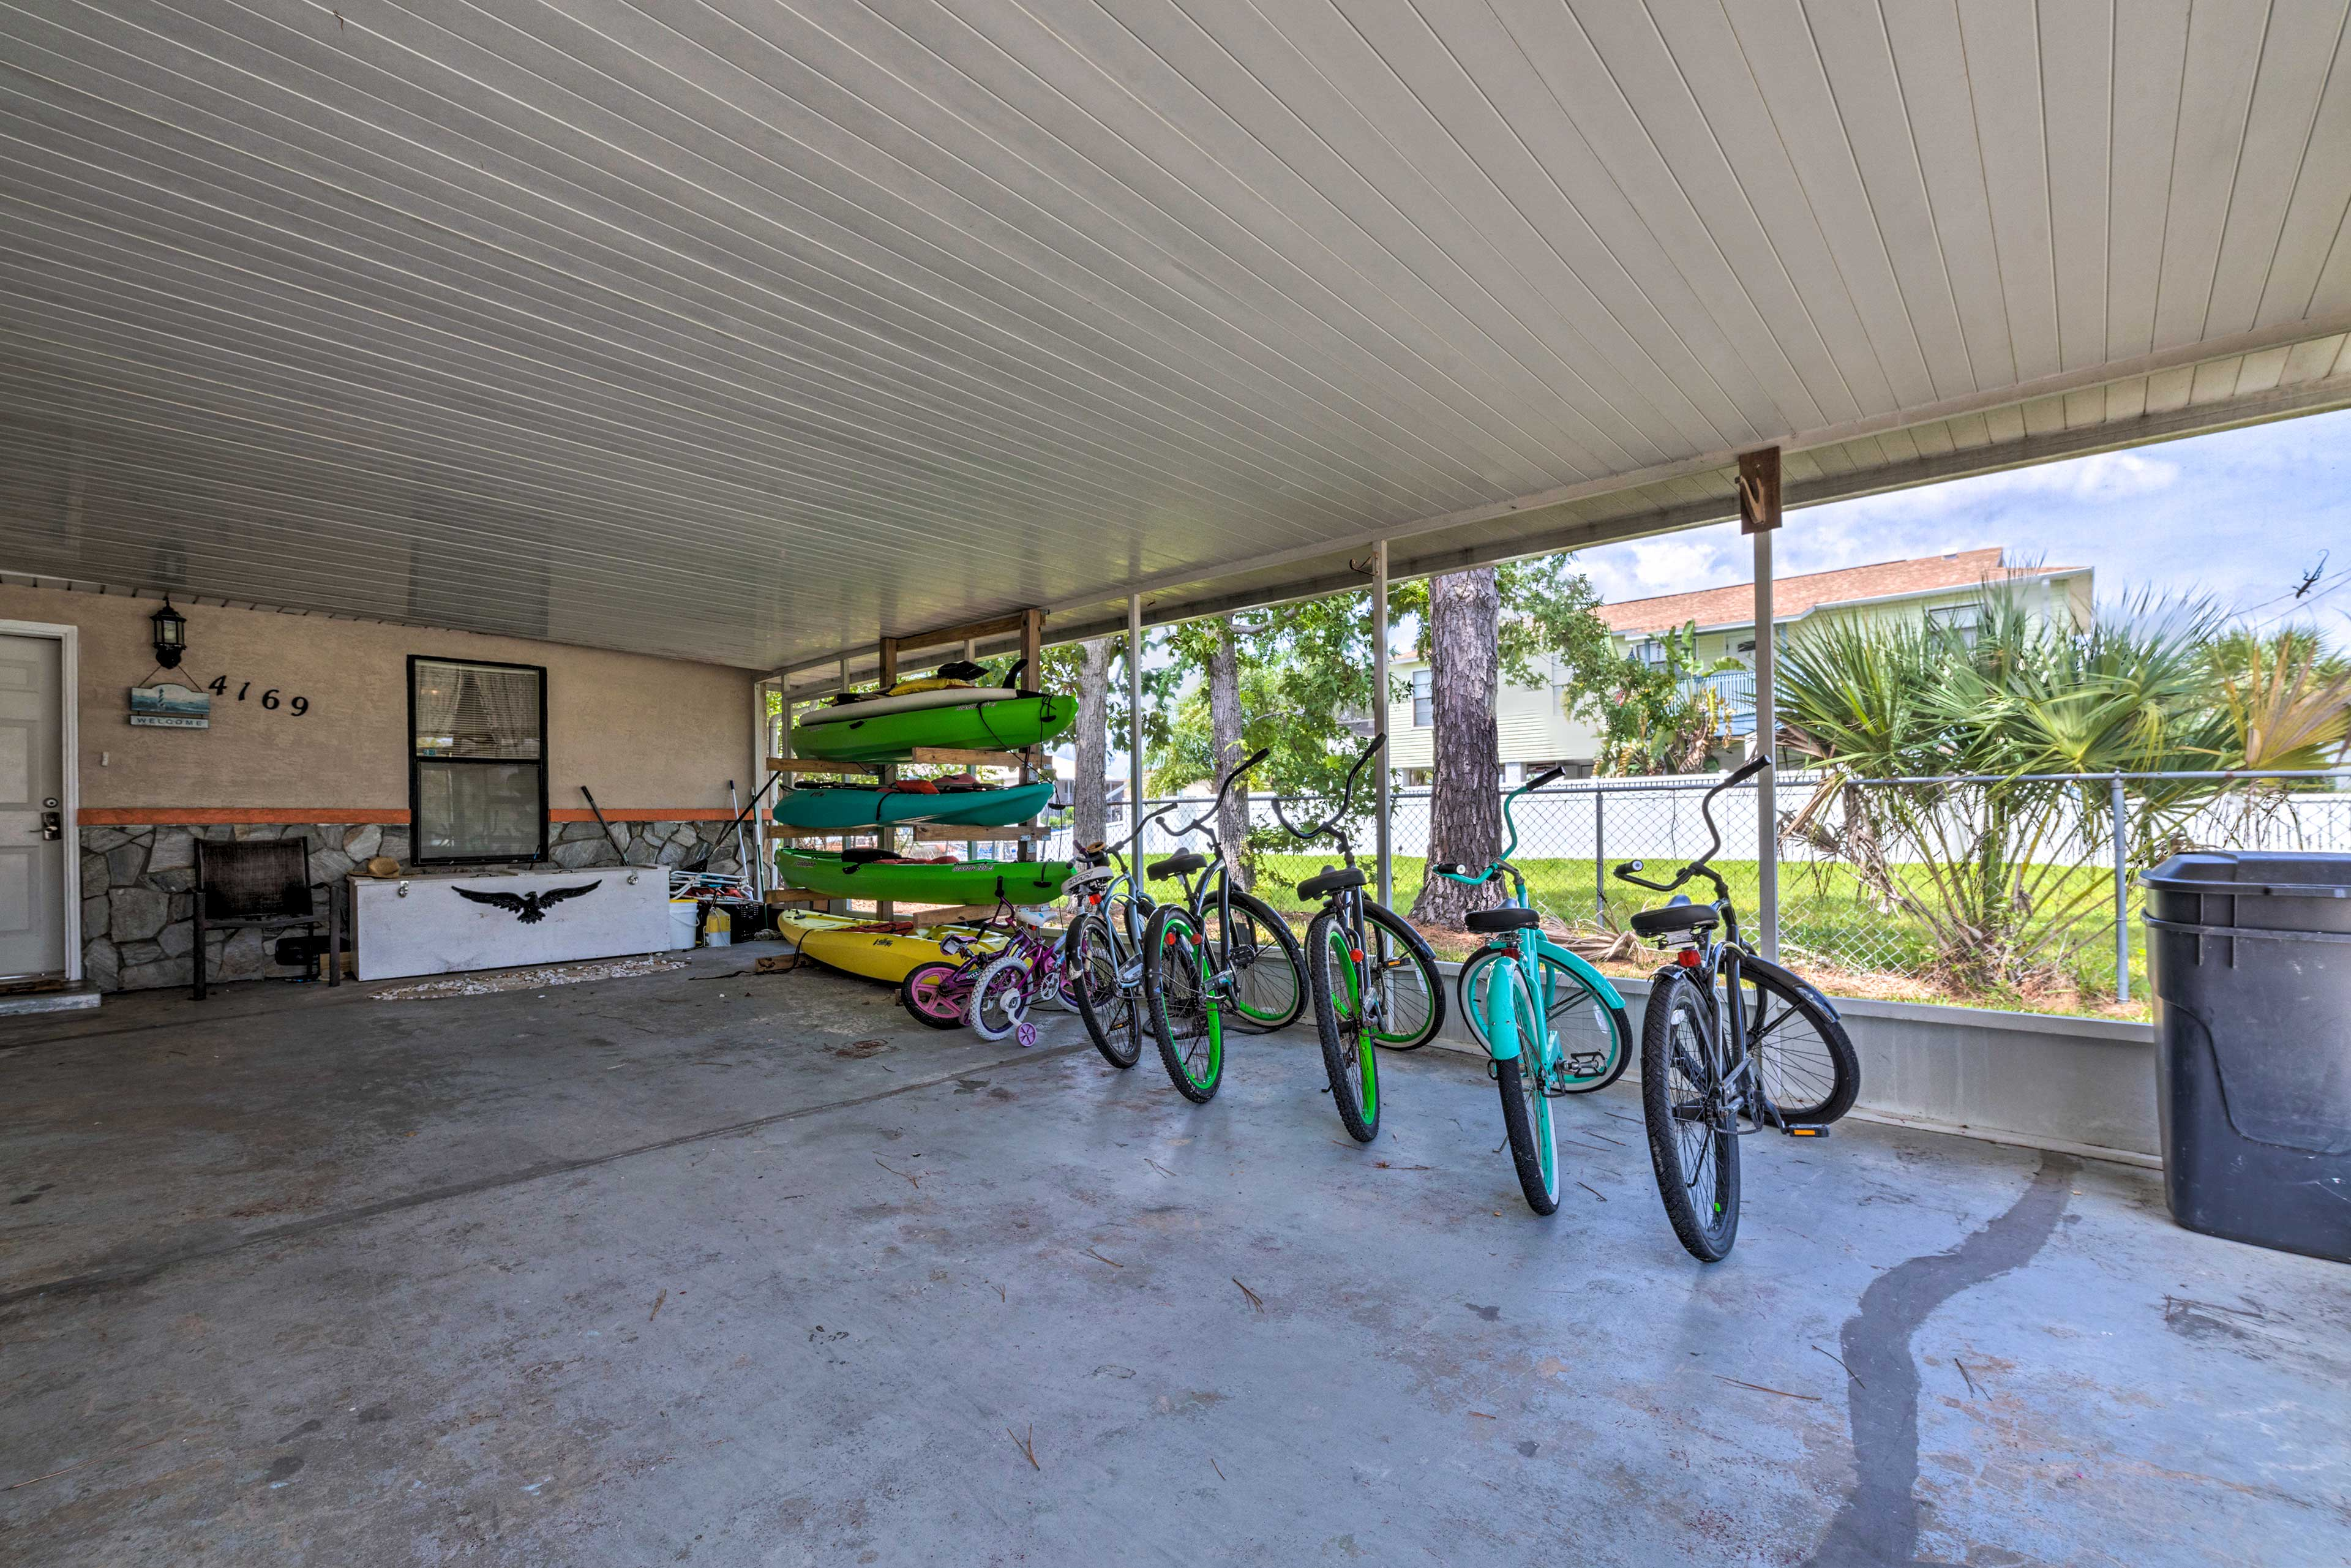 Four kayaks and 6 total bikes are provided.